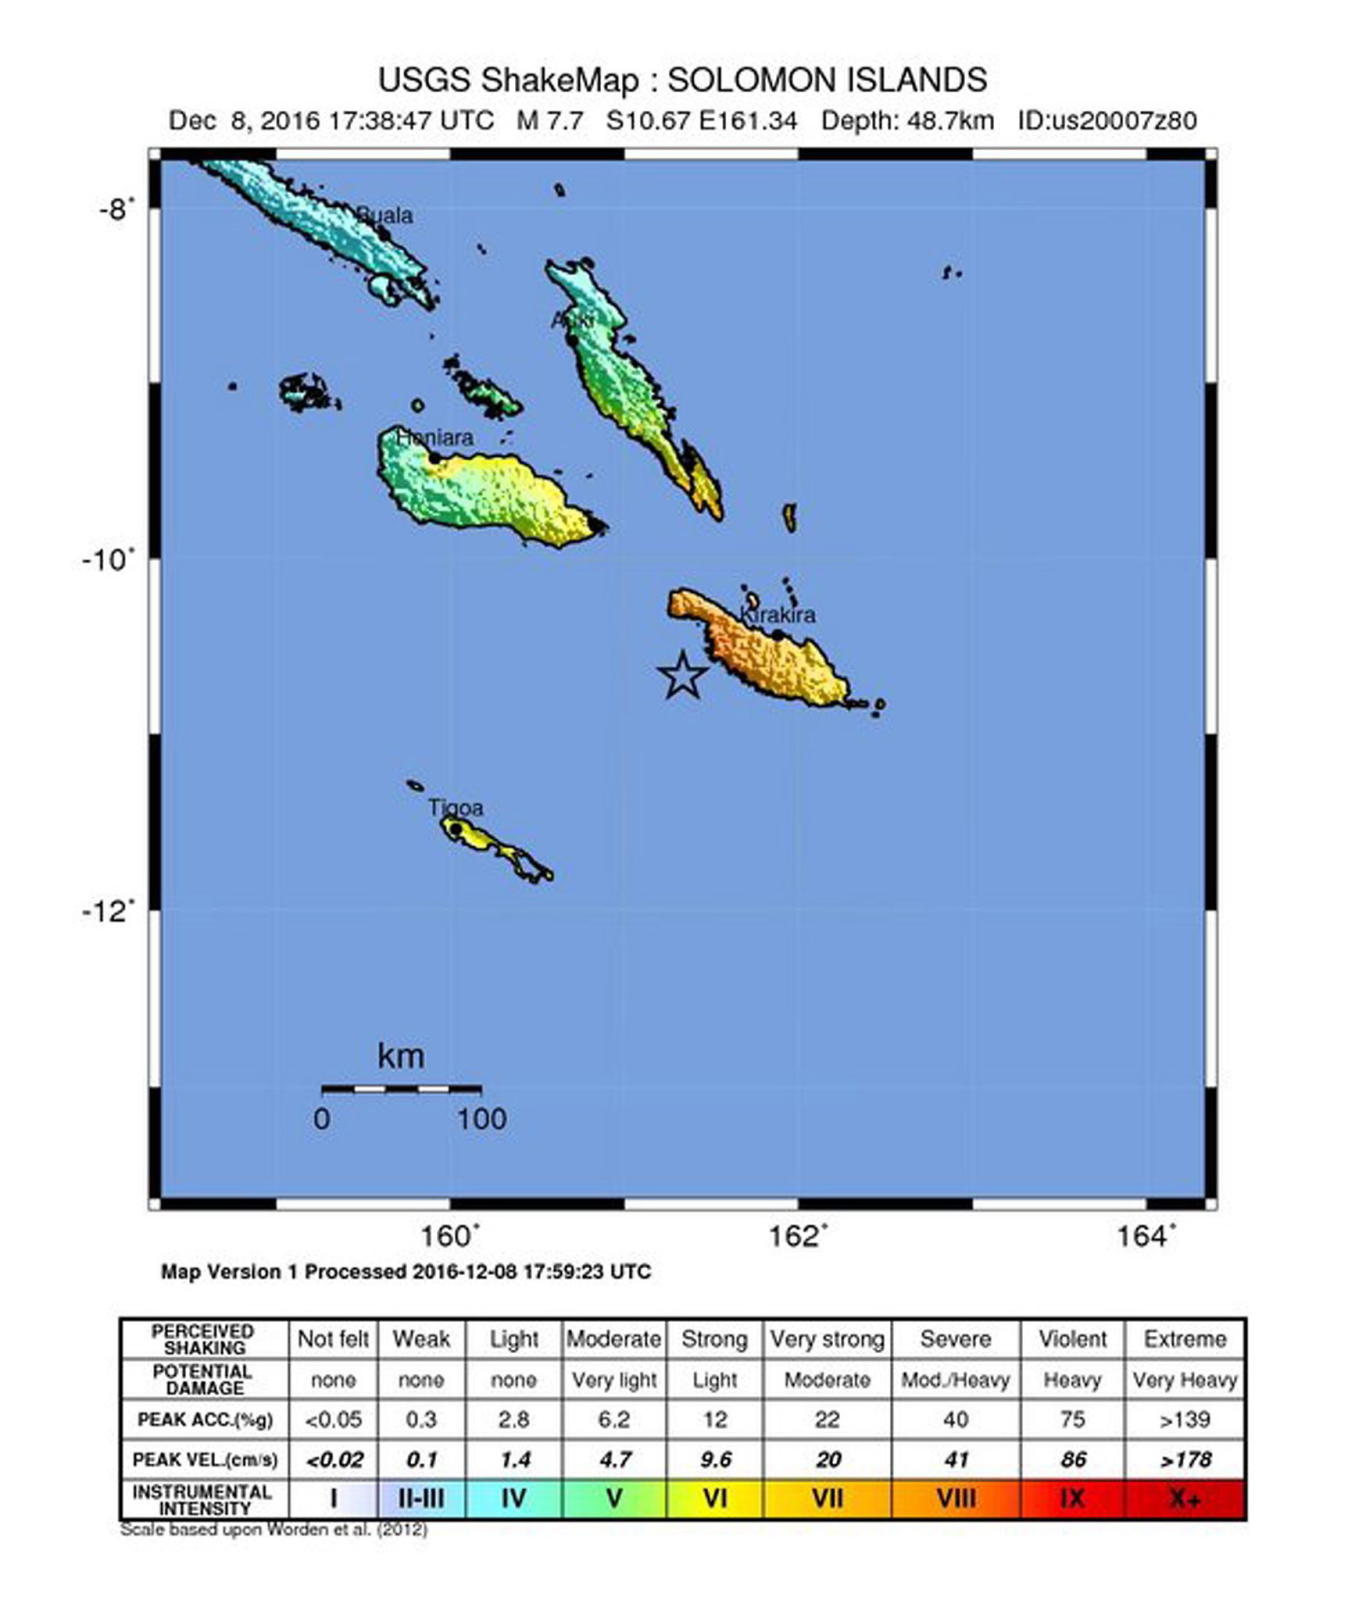 epa05666195 A shakemap released by the US Geological Survey (USGS) on 08 December 2016 shows the epicenter (marked with a star) of a 7.7 magnitude earthquake that was detected off the coast of the Solomon Islands, east of Papua New Guinea, at 17:38:47 UTC on 08 December 2016 in a depth of 48.7 kilometers.  EPA/USGS / HANDOUT  HANDOUT EDITORIAL USE ONLY  Dostawca: PAP/EPA.